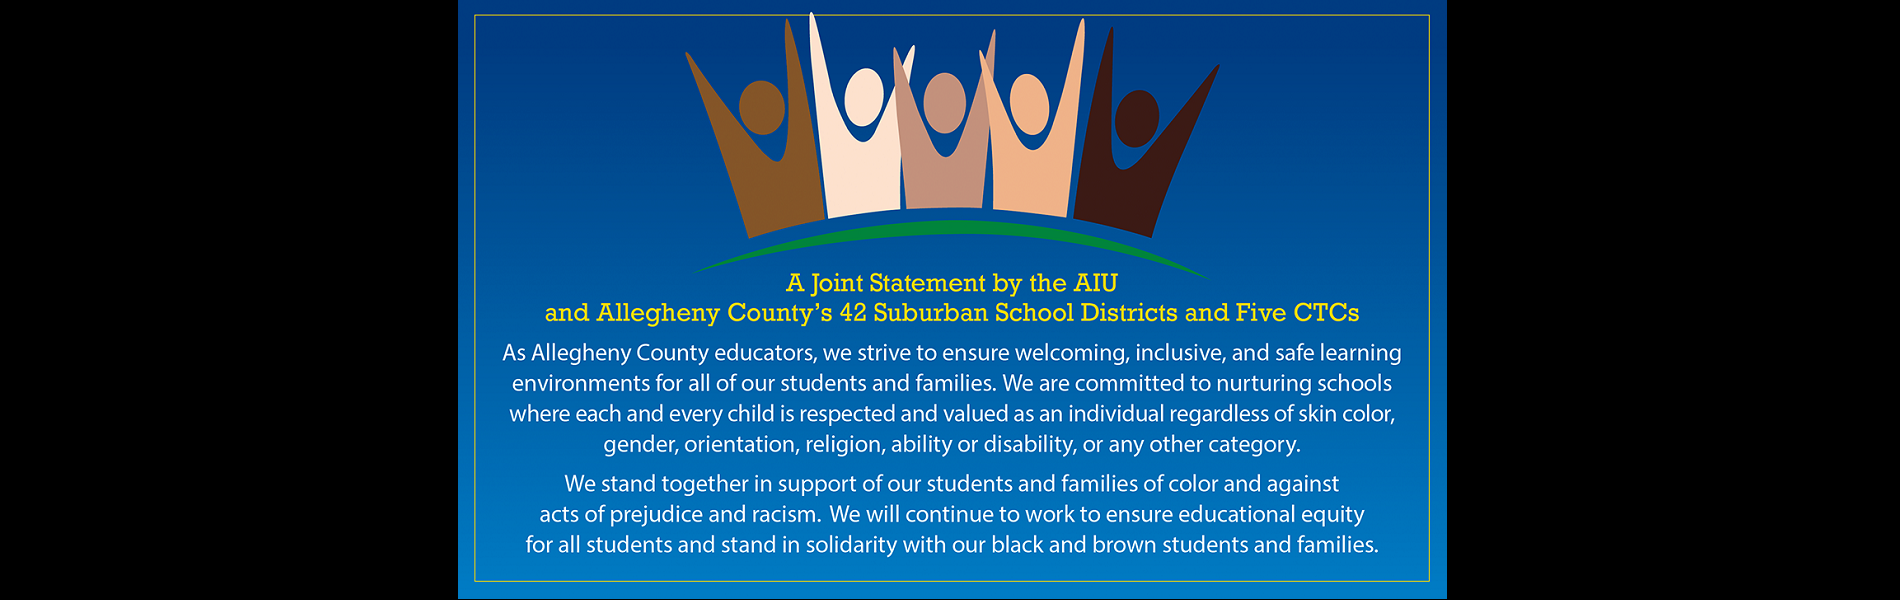 Join Statement by the AIU and Allegheny County's 42 Suburban School Districts and Five CTCs